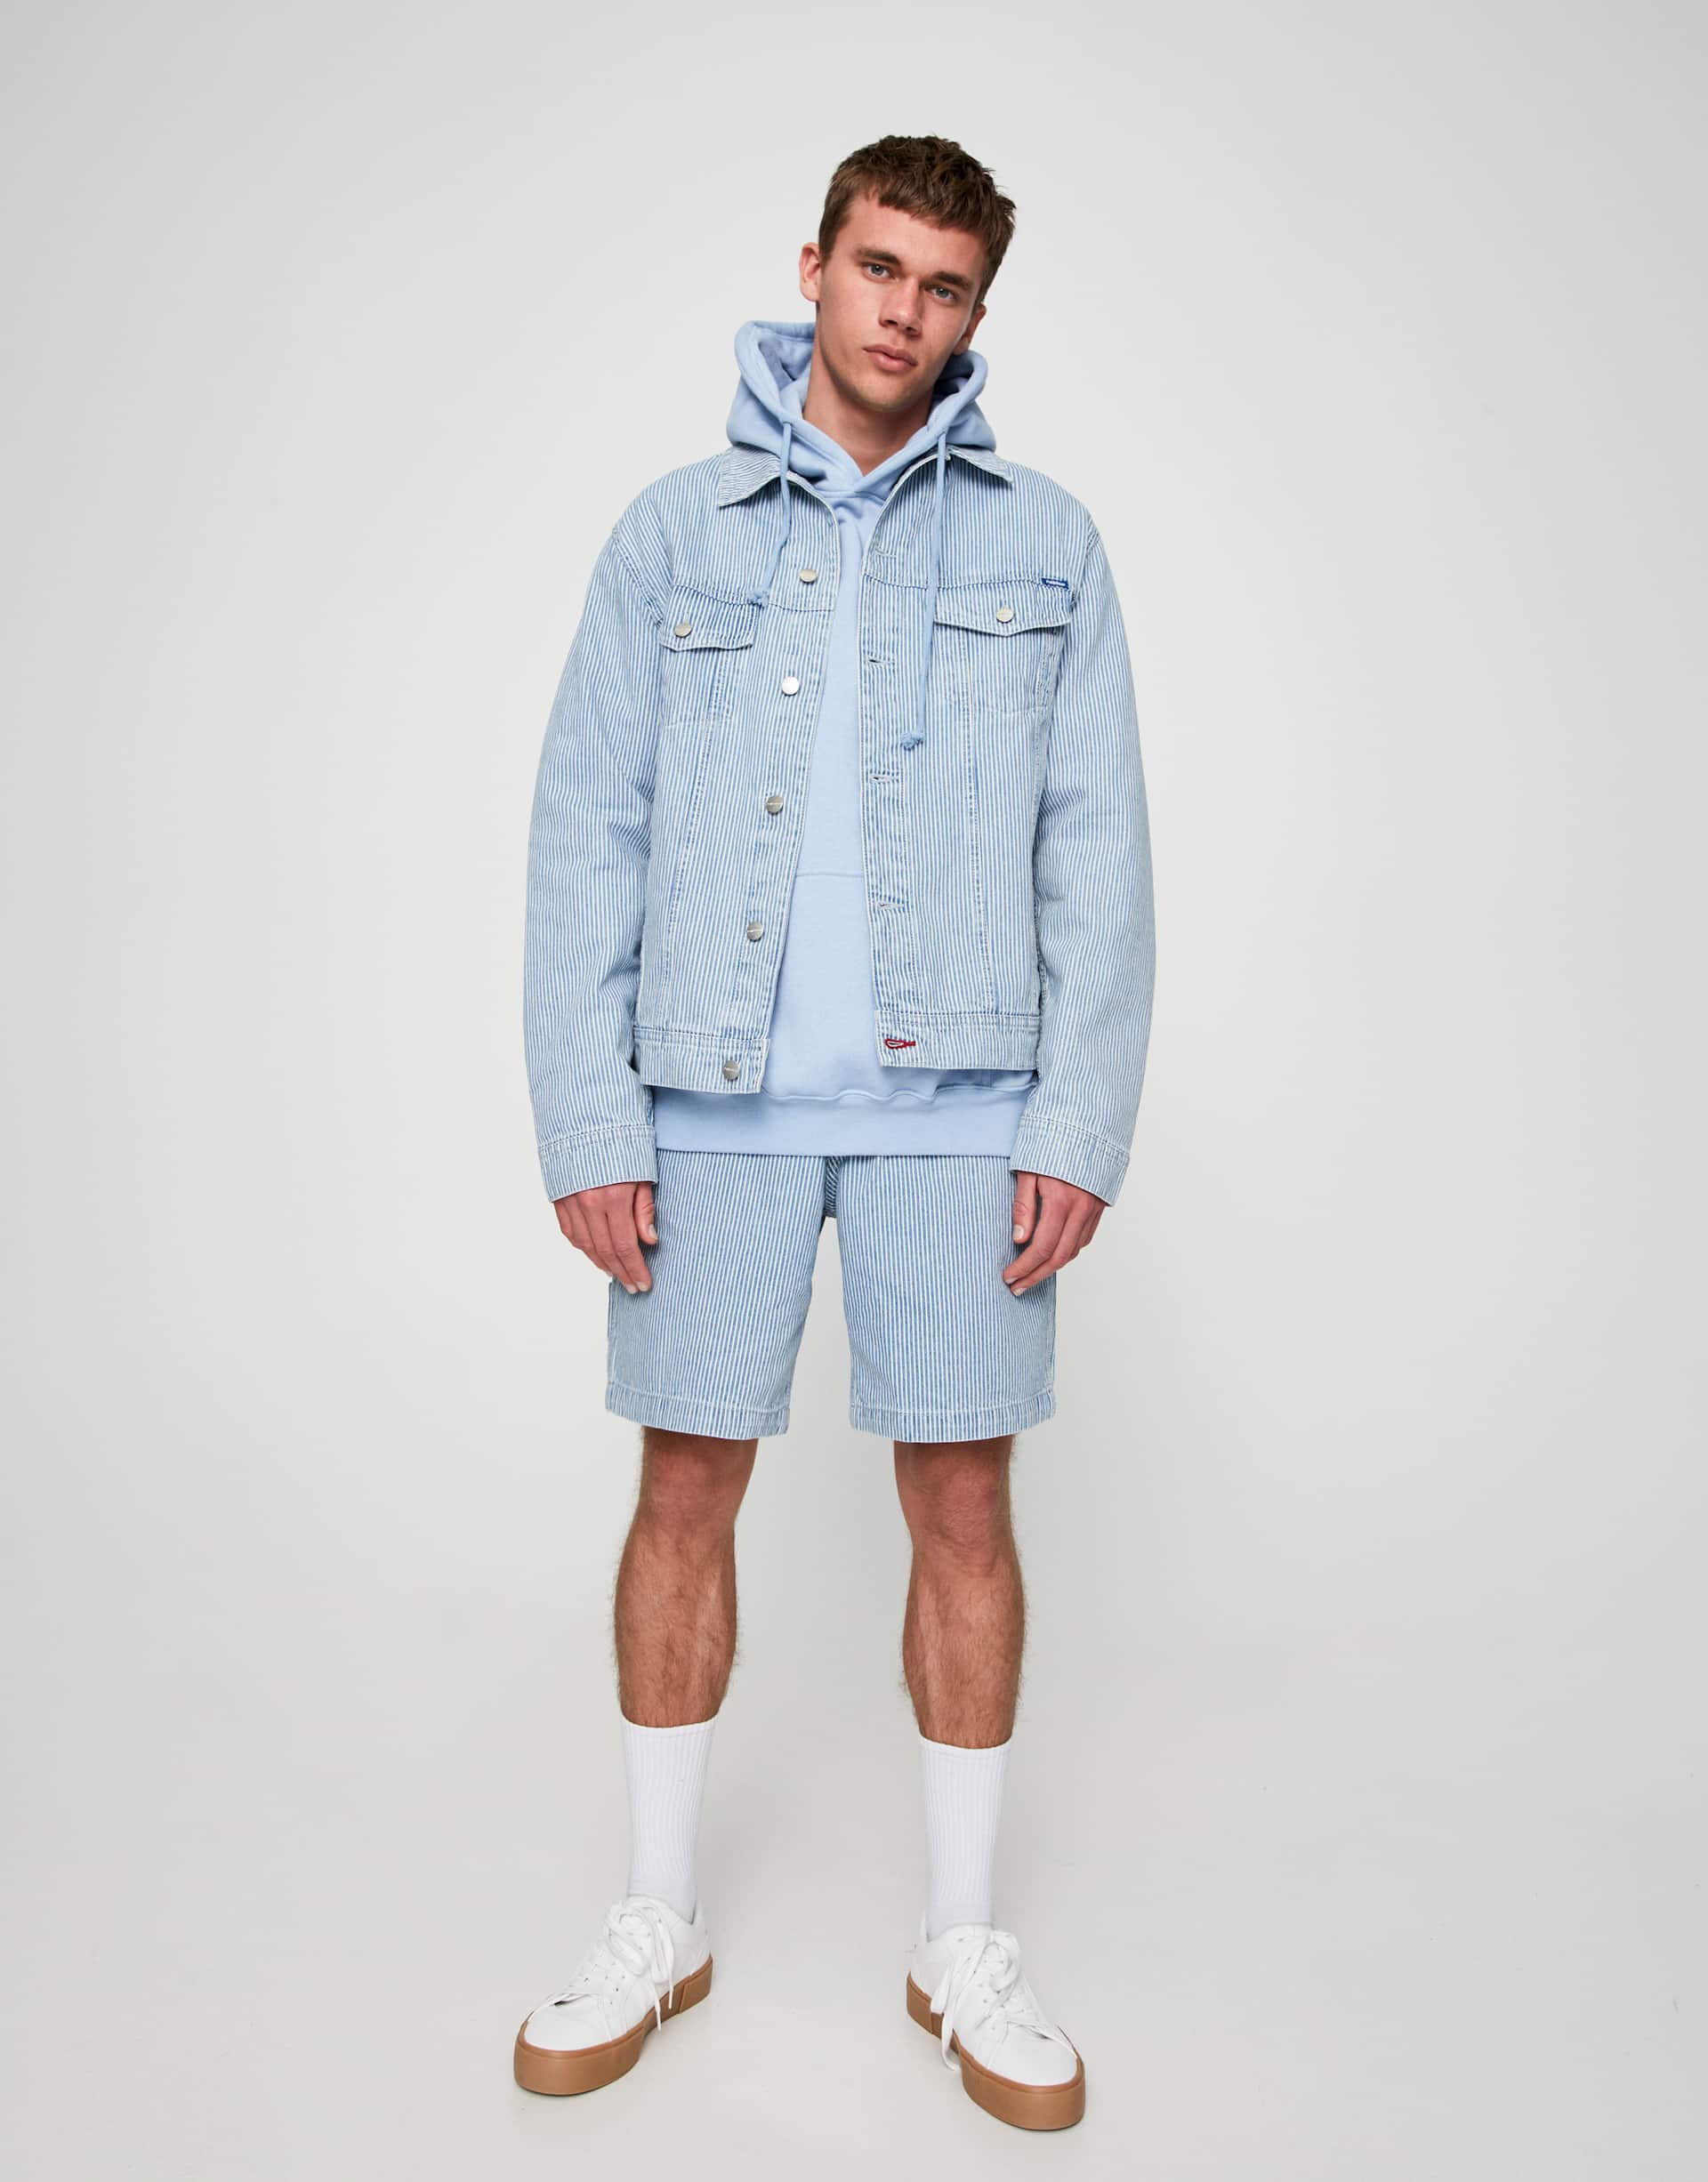 mens denim trends